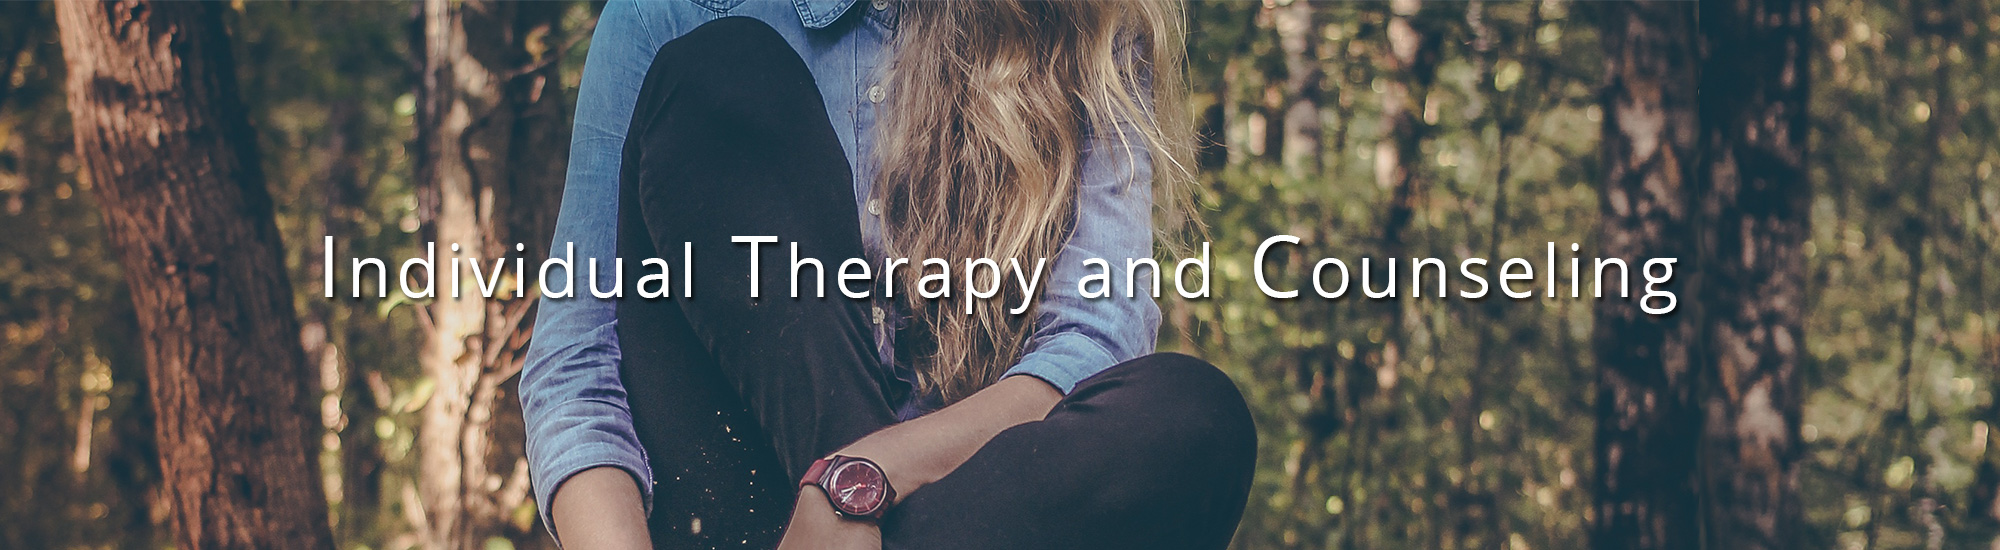 Individual Therapy and Counseling in San Francisco